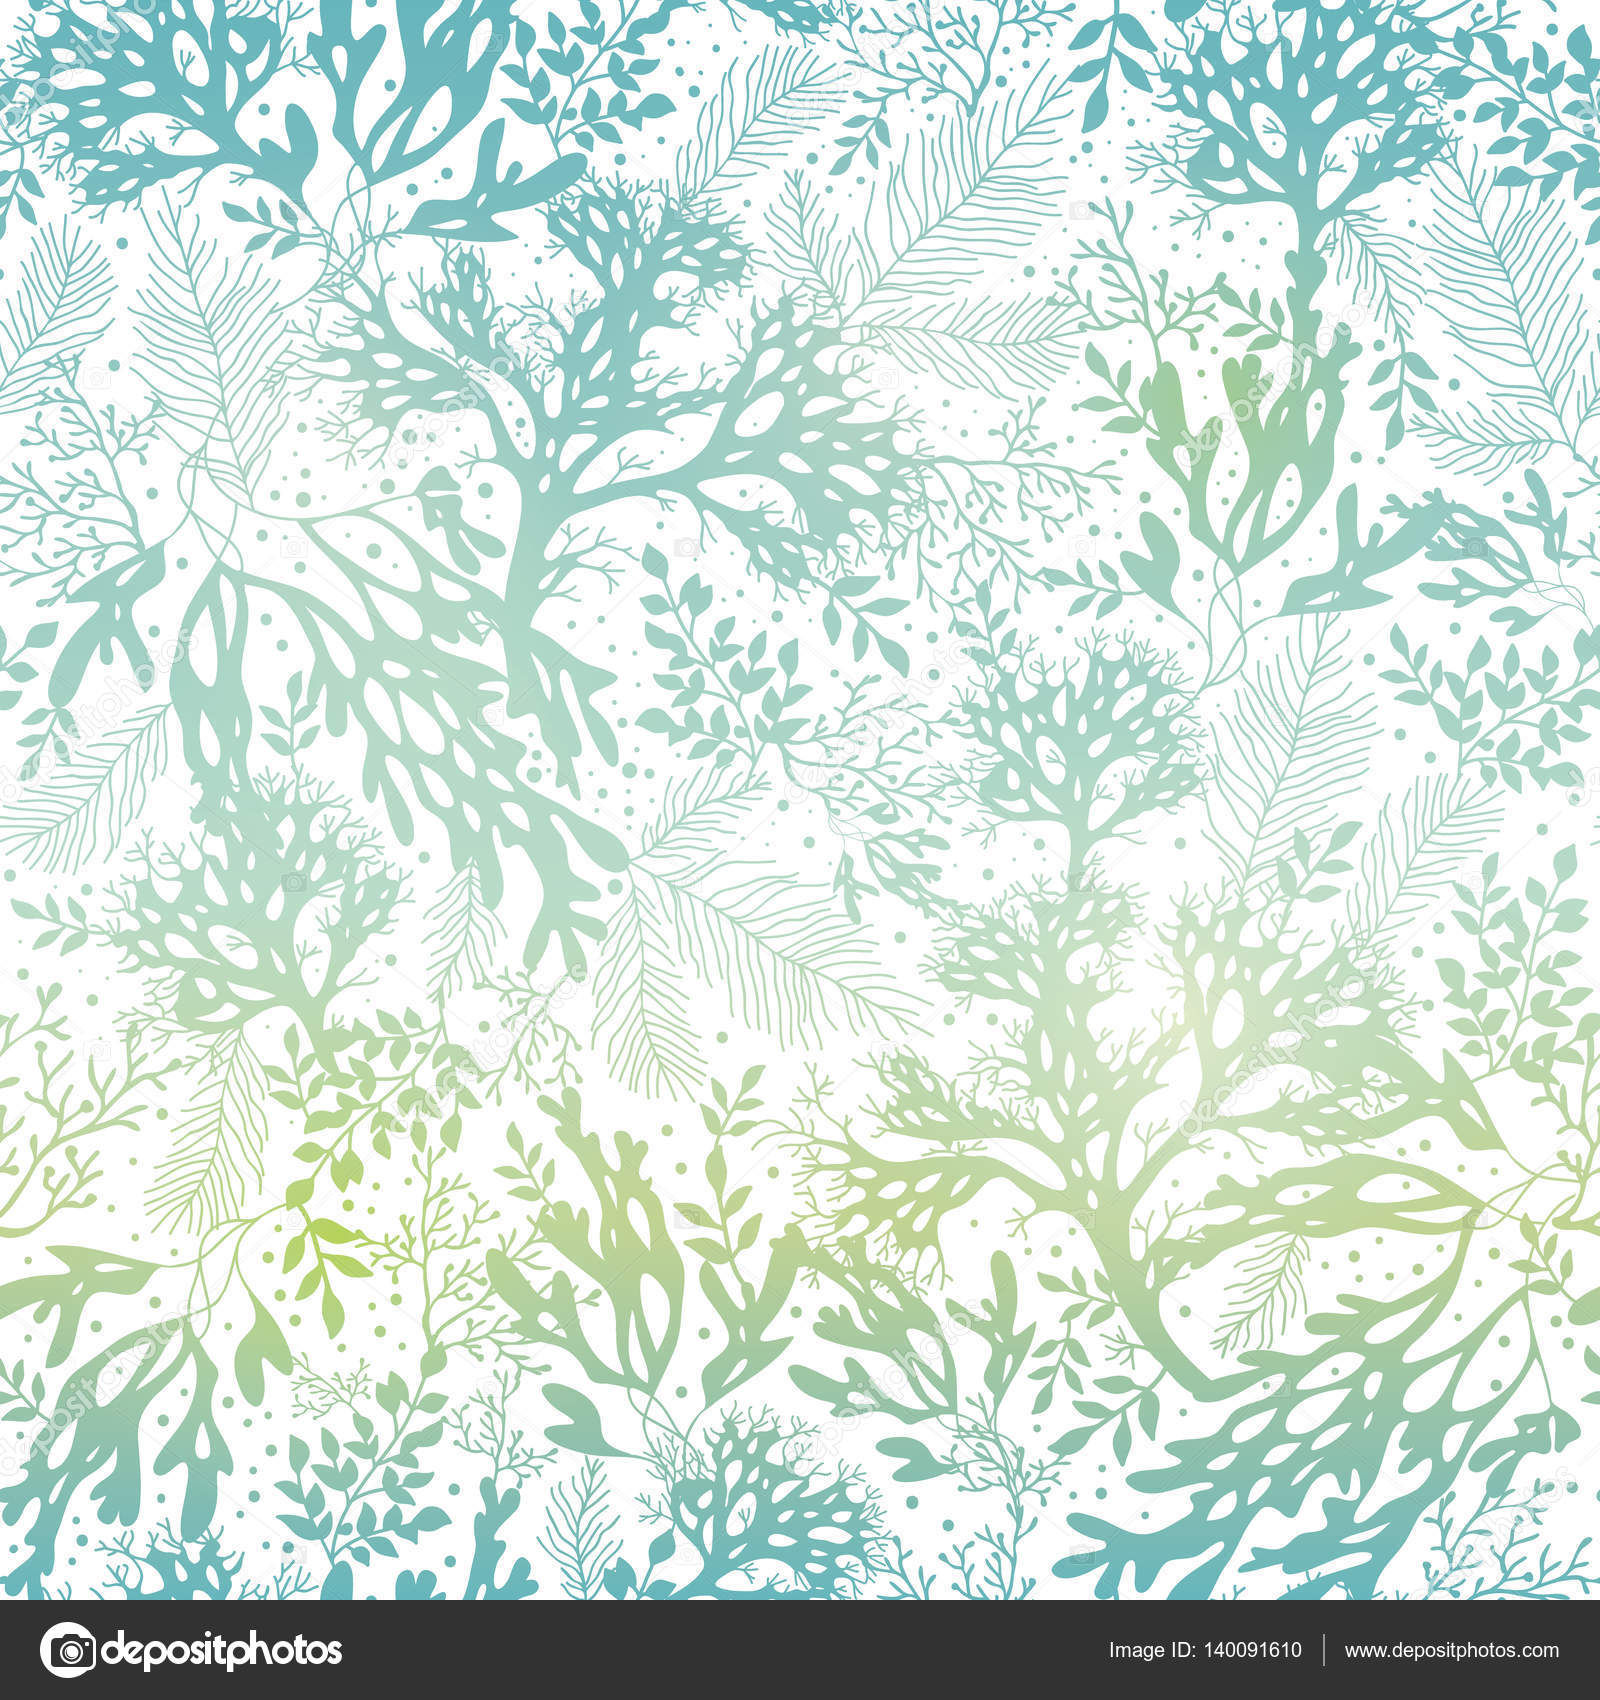 Vector Blue Freen Seaweed Texture Seamless Pattern Background Great For Elegant Gray Fabric Cards Wedding Invitations Wallpaper Textile Design